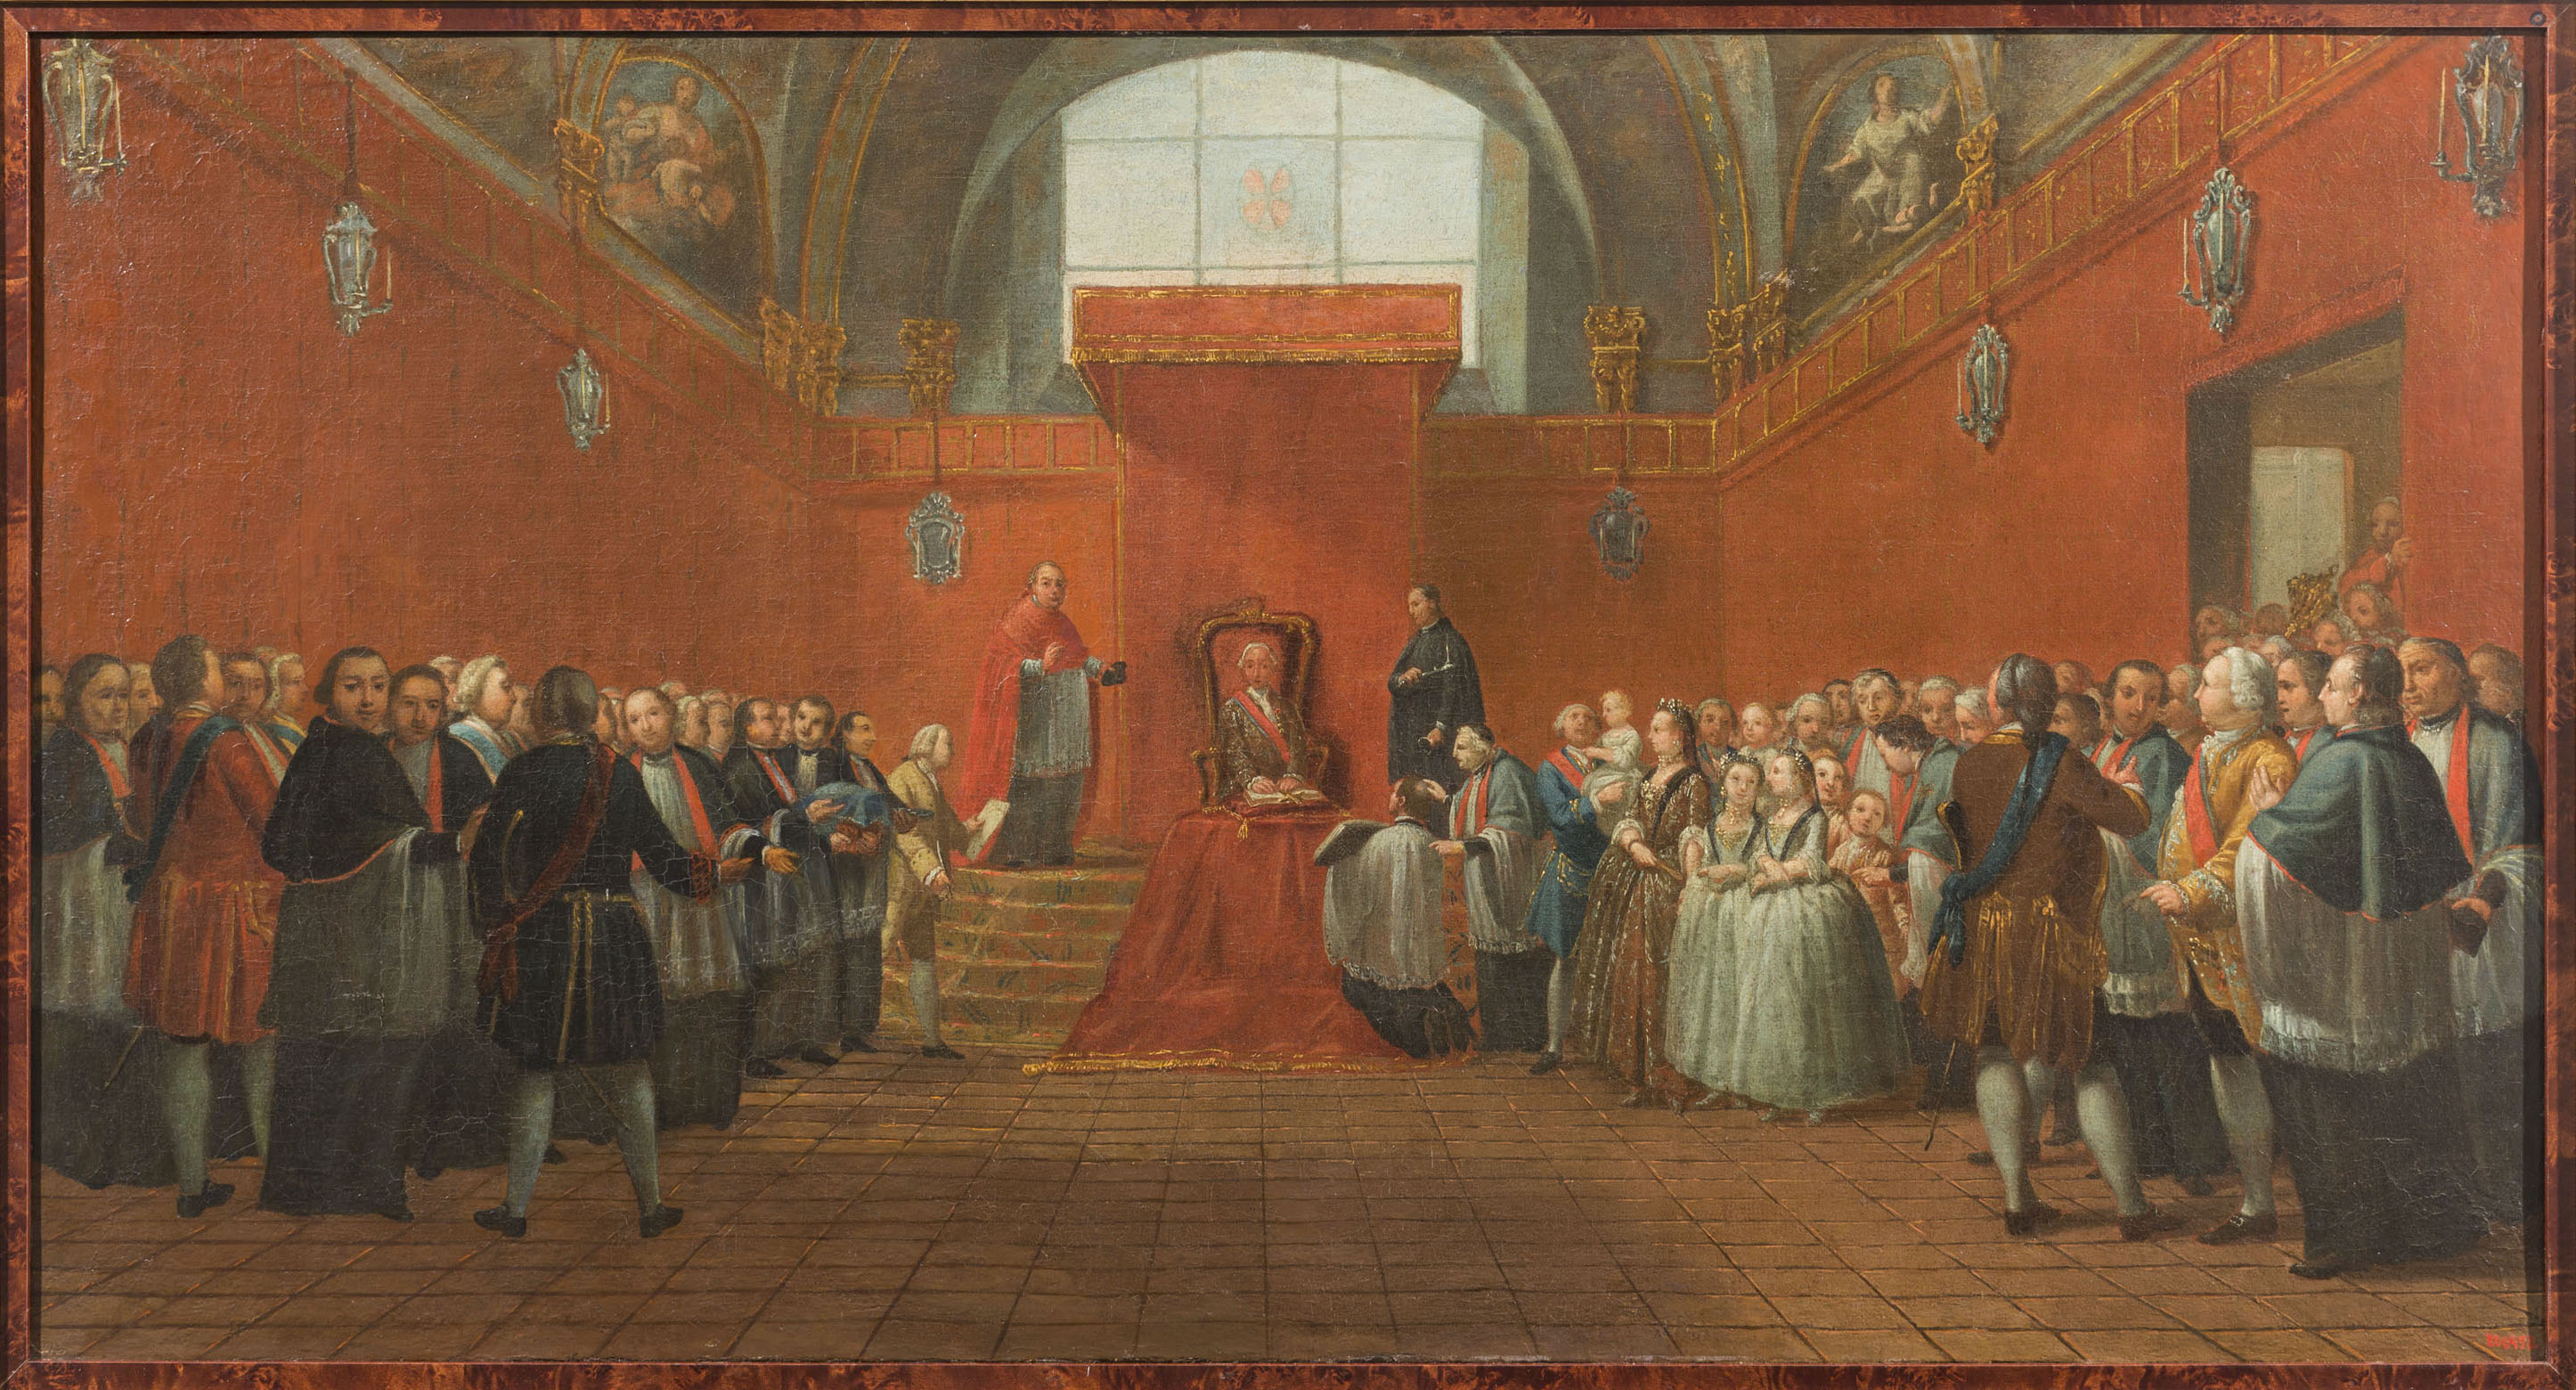 Manuel Tramulles - Charles III Taking Possession of the Canonry of Barcelona in 1759 - 1768